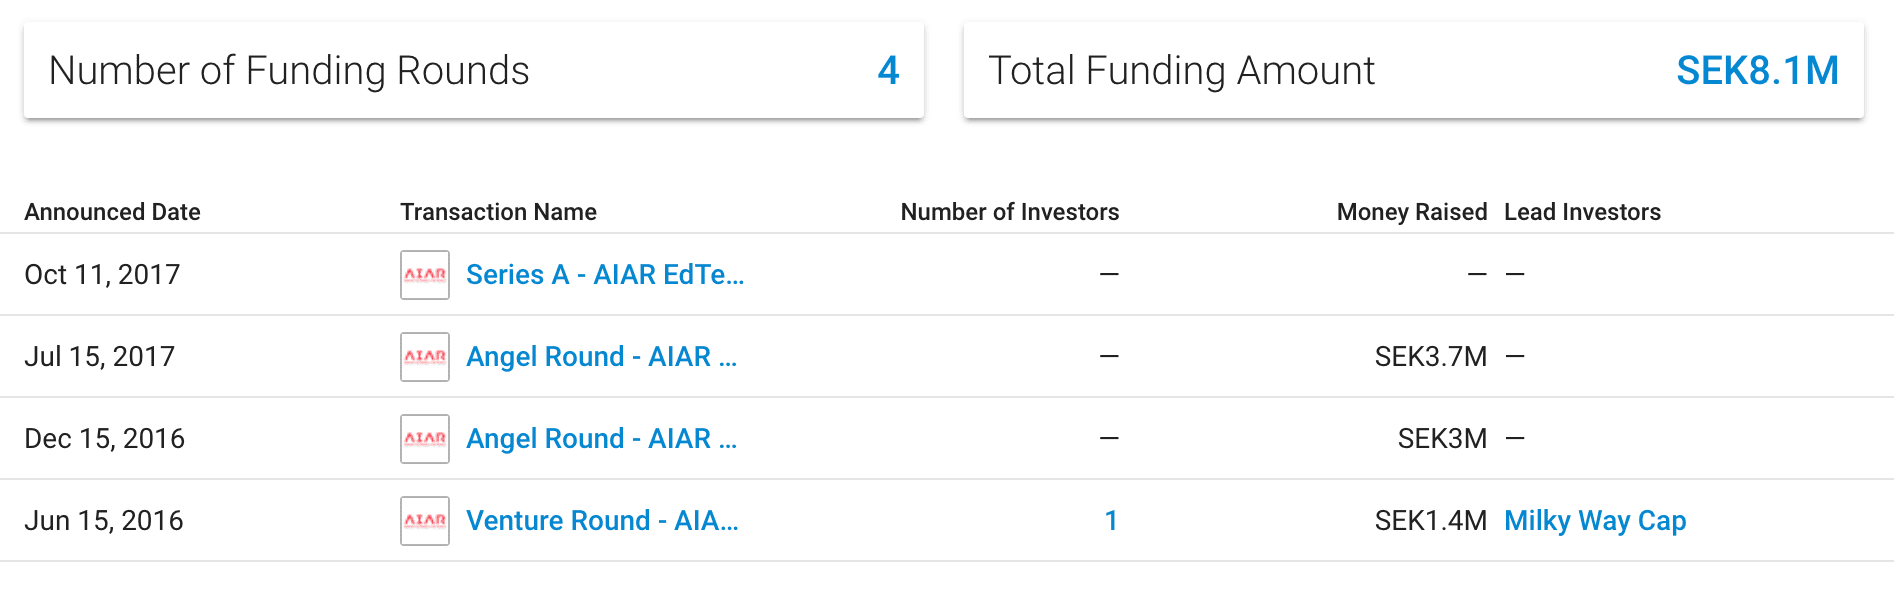 aiar funding rounds